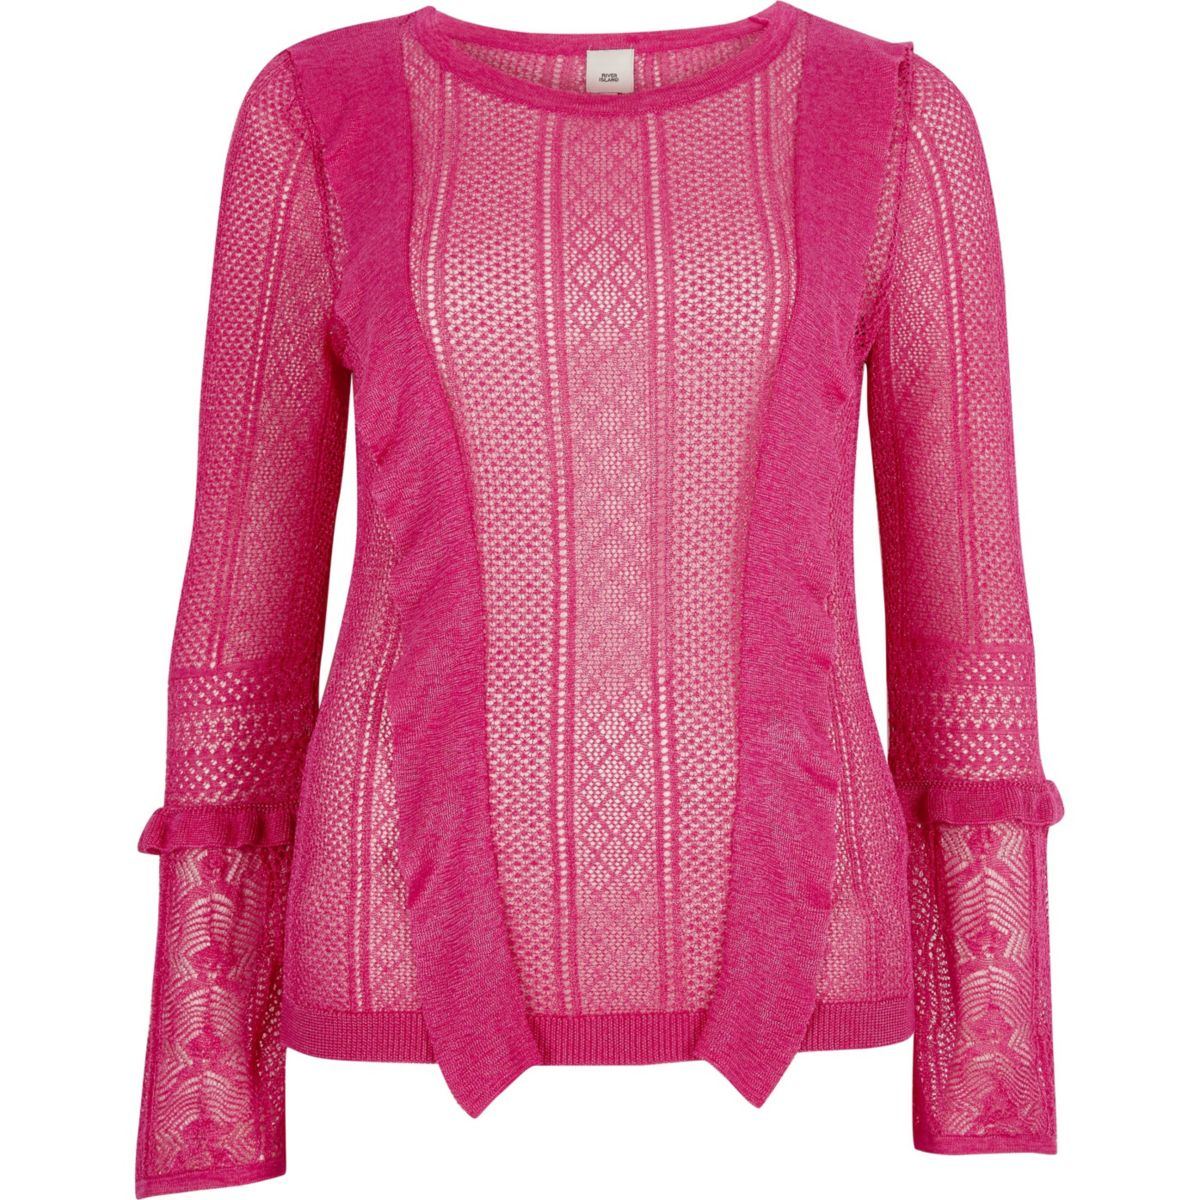 Pink open knit frill detail jumper